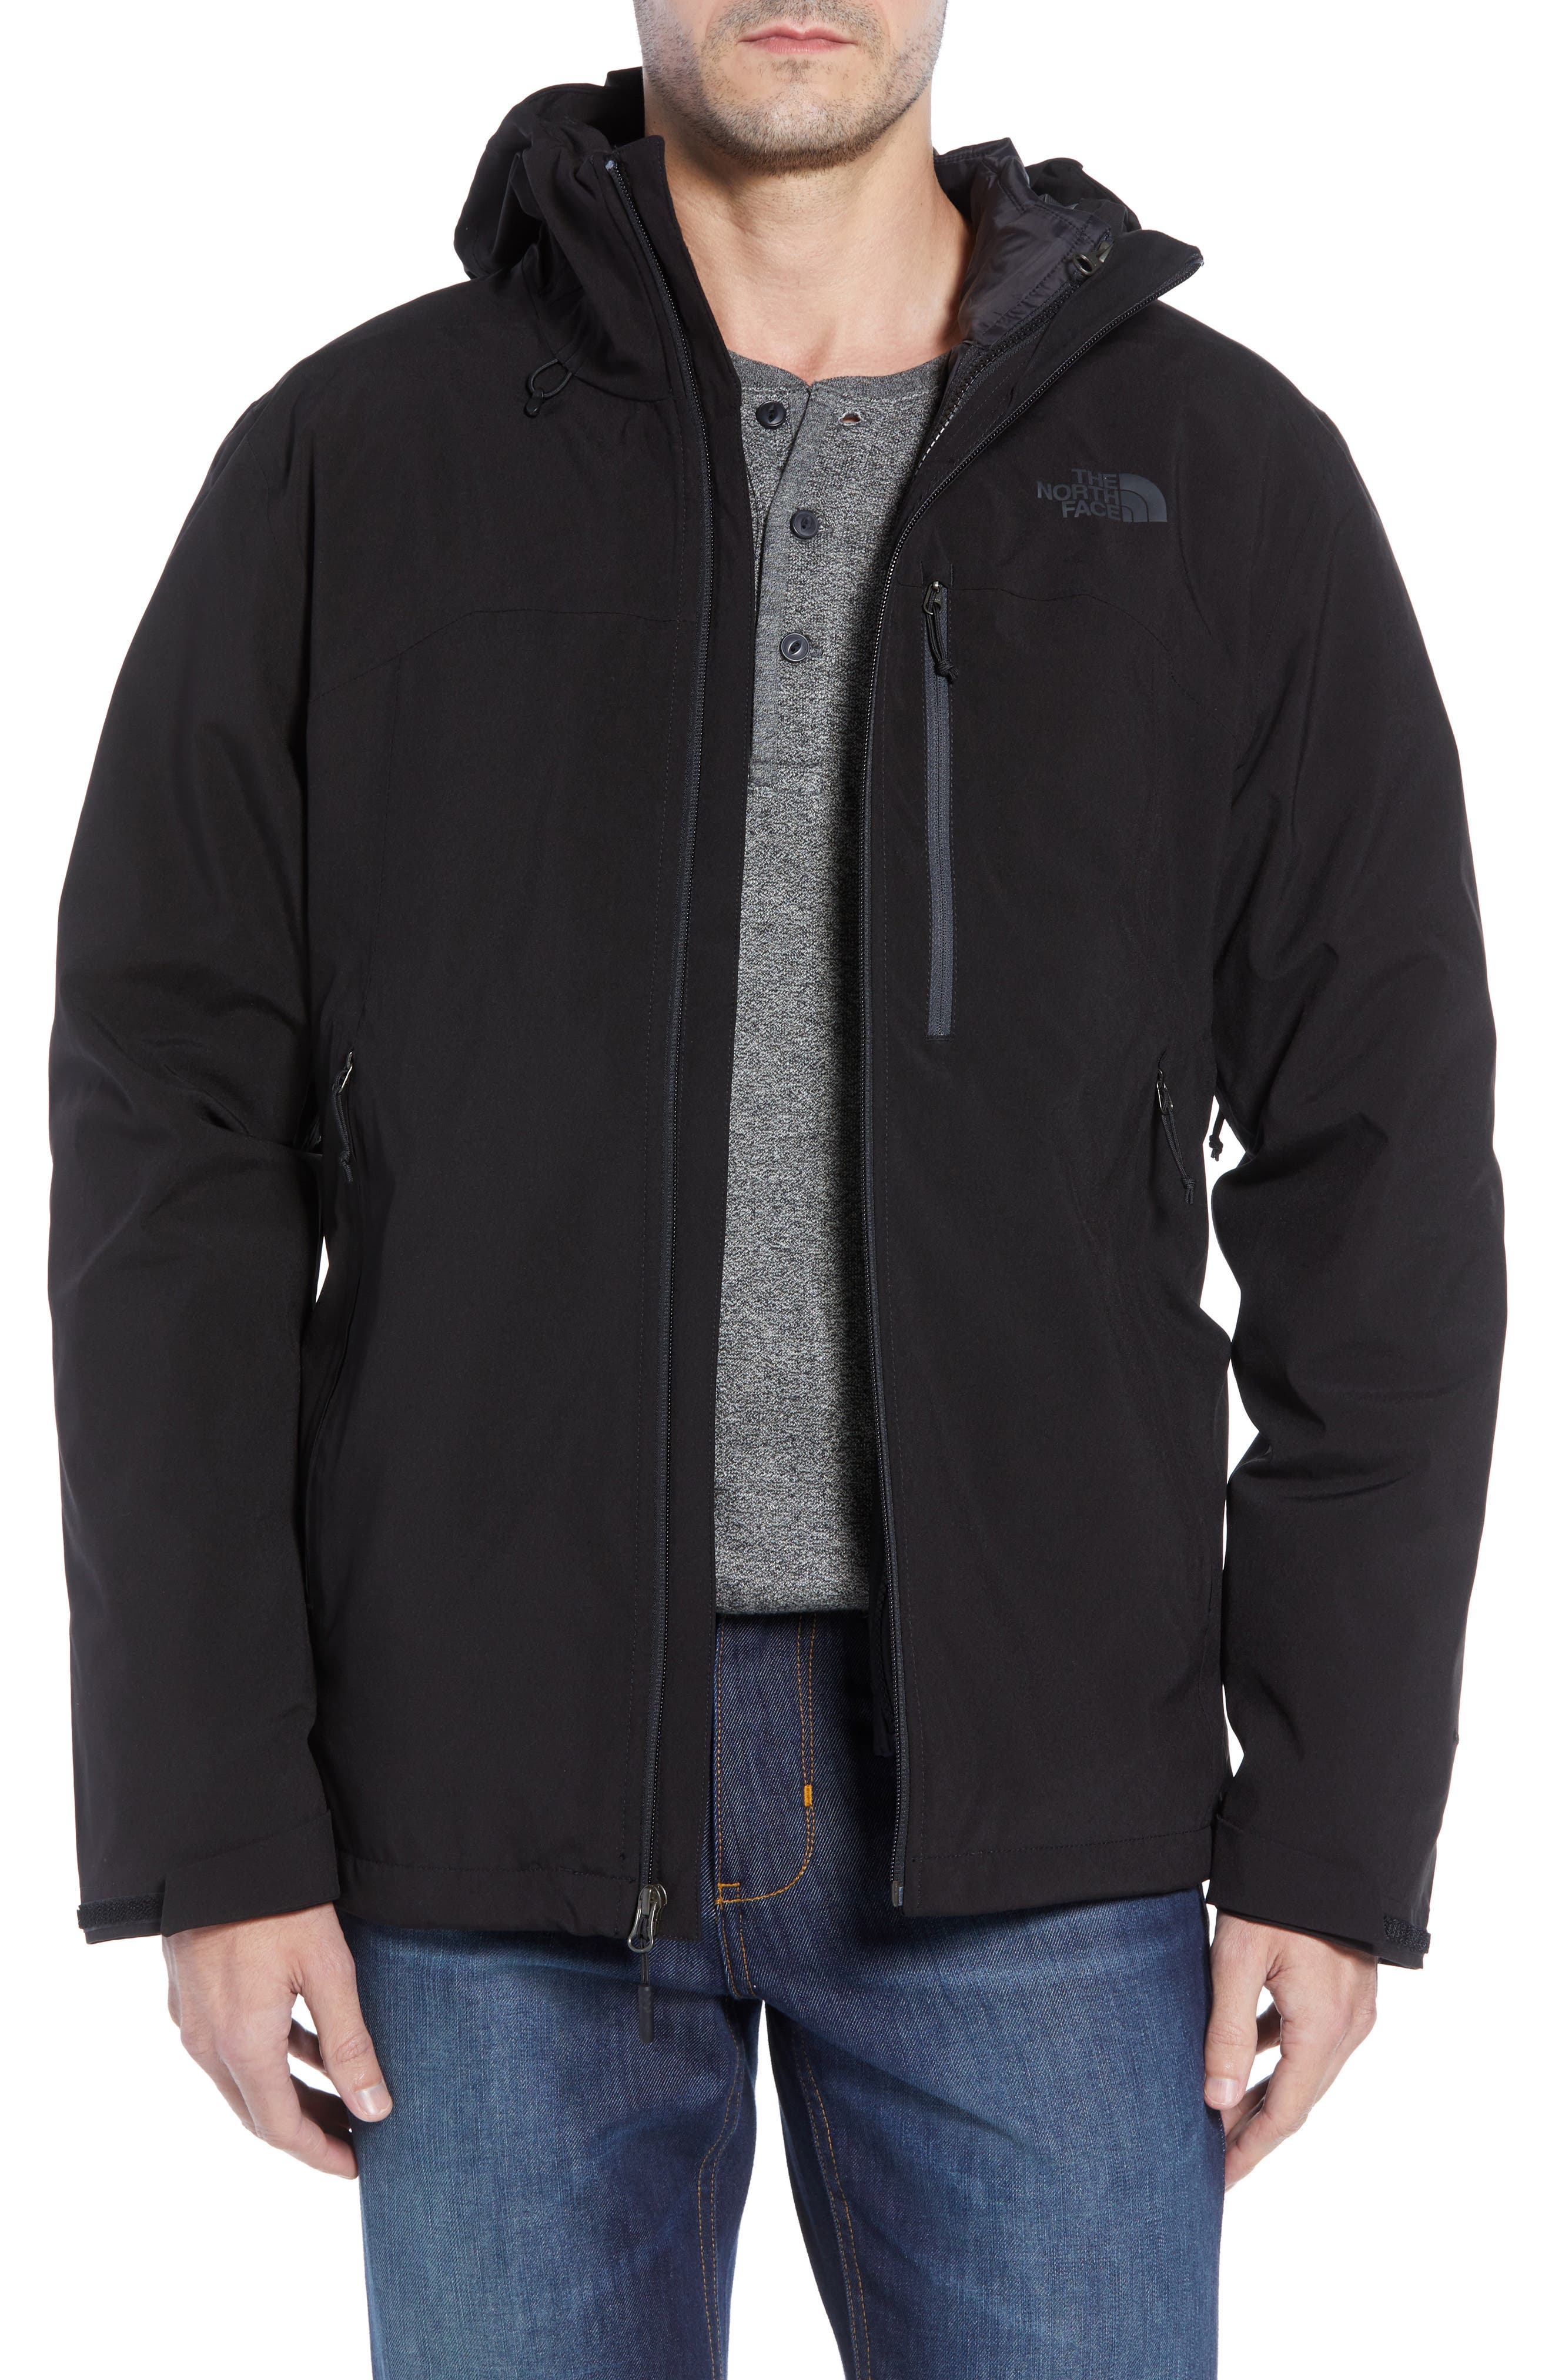 ThermoBall TriClimate<sup>®</sup> 3-in-1 Jacket,                             Main thumbnail 1, color,                             001